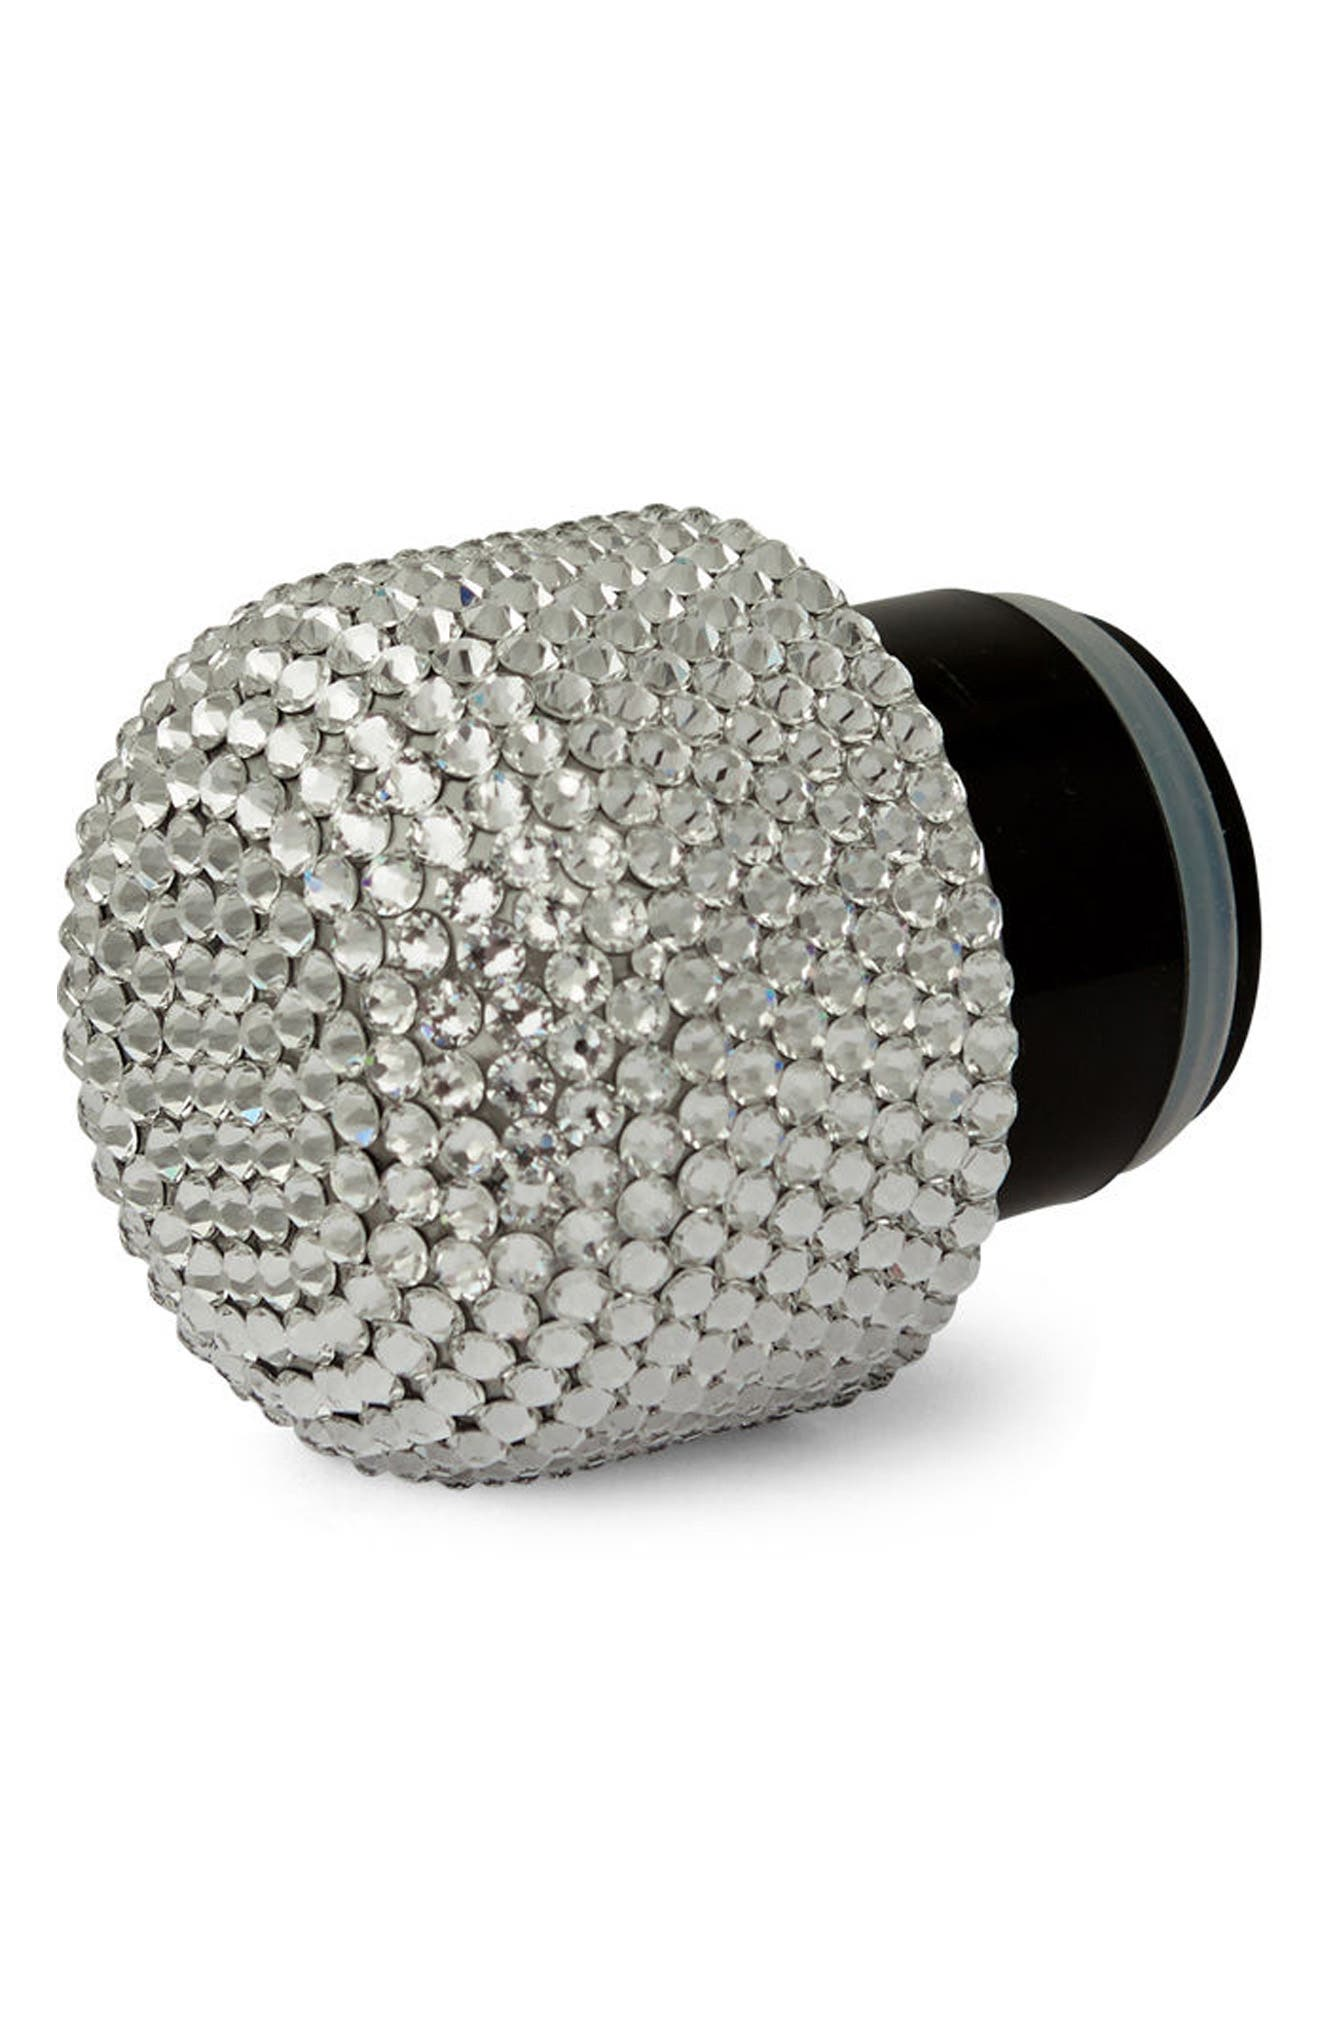 Alternate Image 3  - S'well Alina Swarovski Crystal Insulated Stainless Steel Water Bottle (Limited Edition)